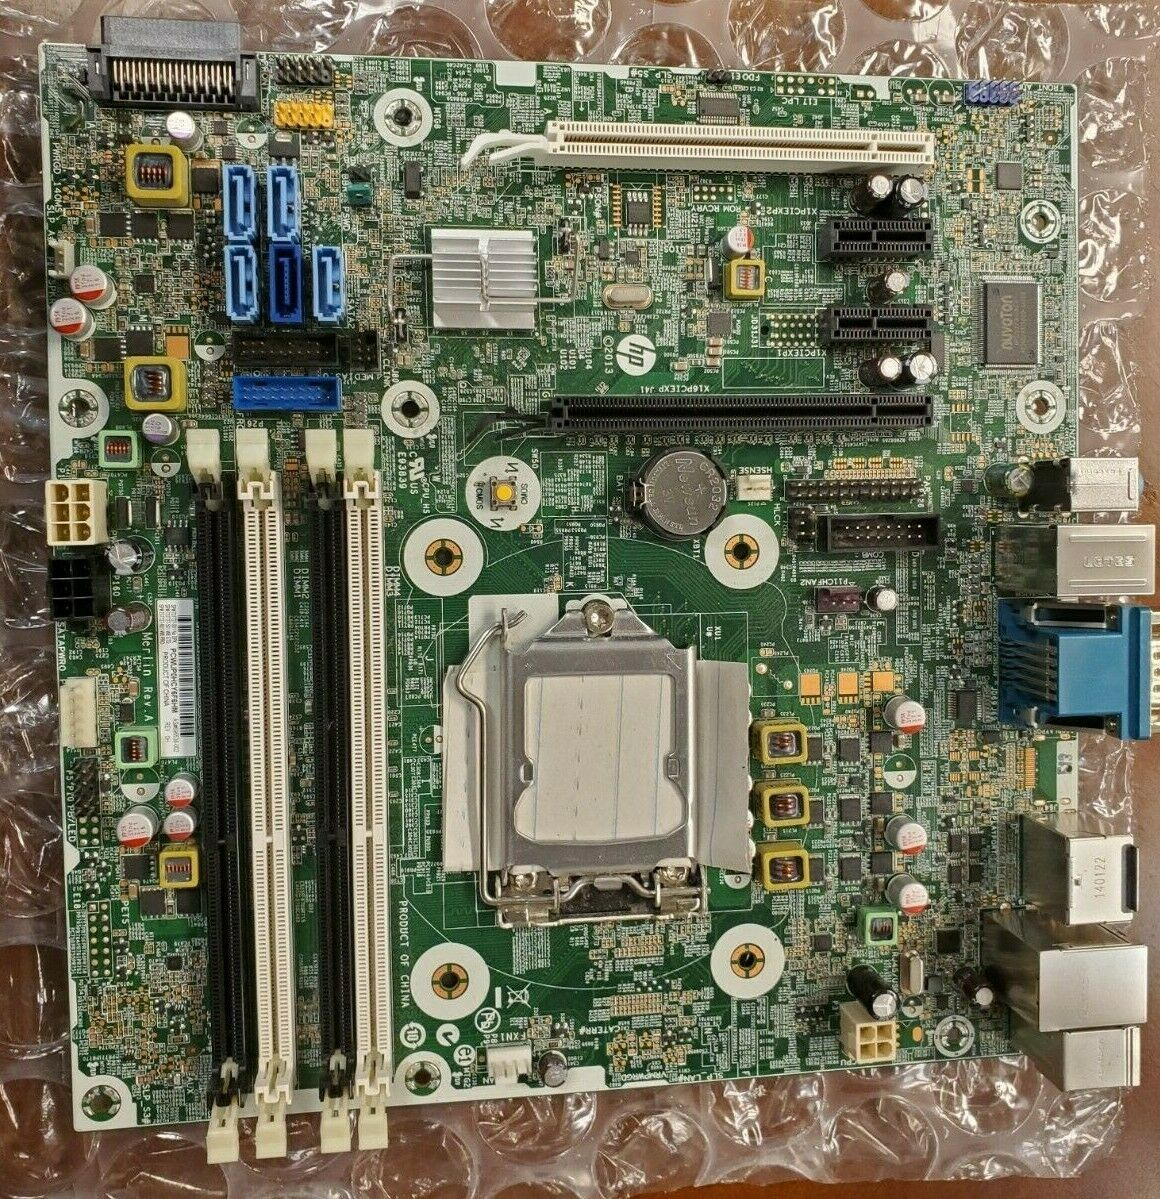 Primary image for HP EliteDesk 800 G1 Tower PC Motherboard 737727-001 737727-501/601 LGA1150 L-X